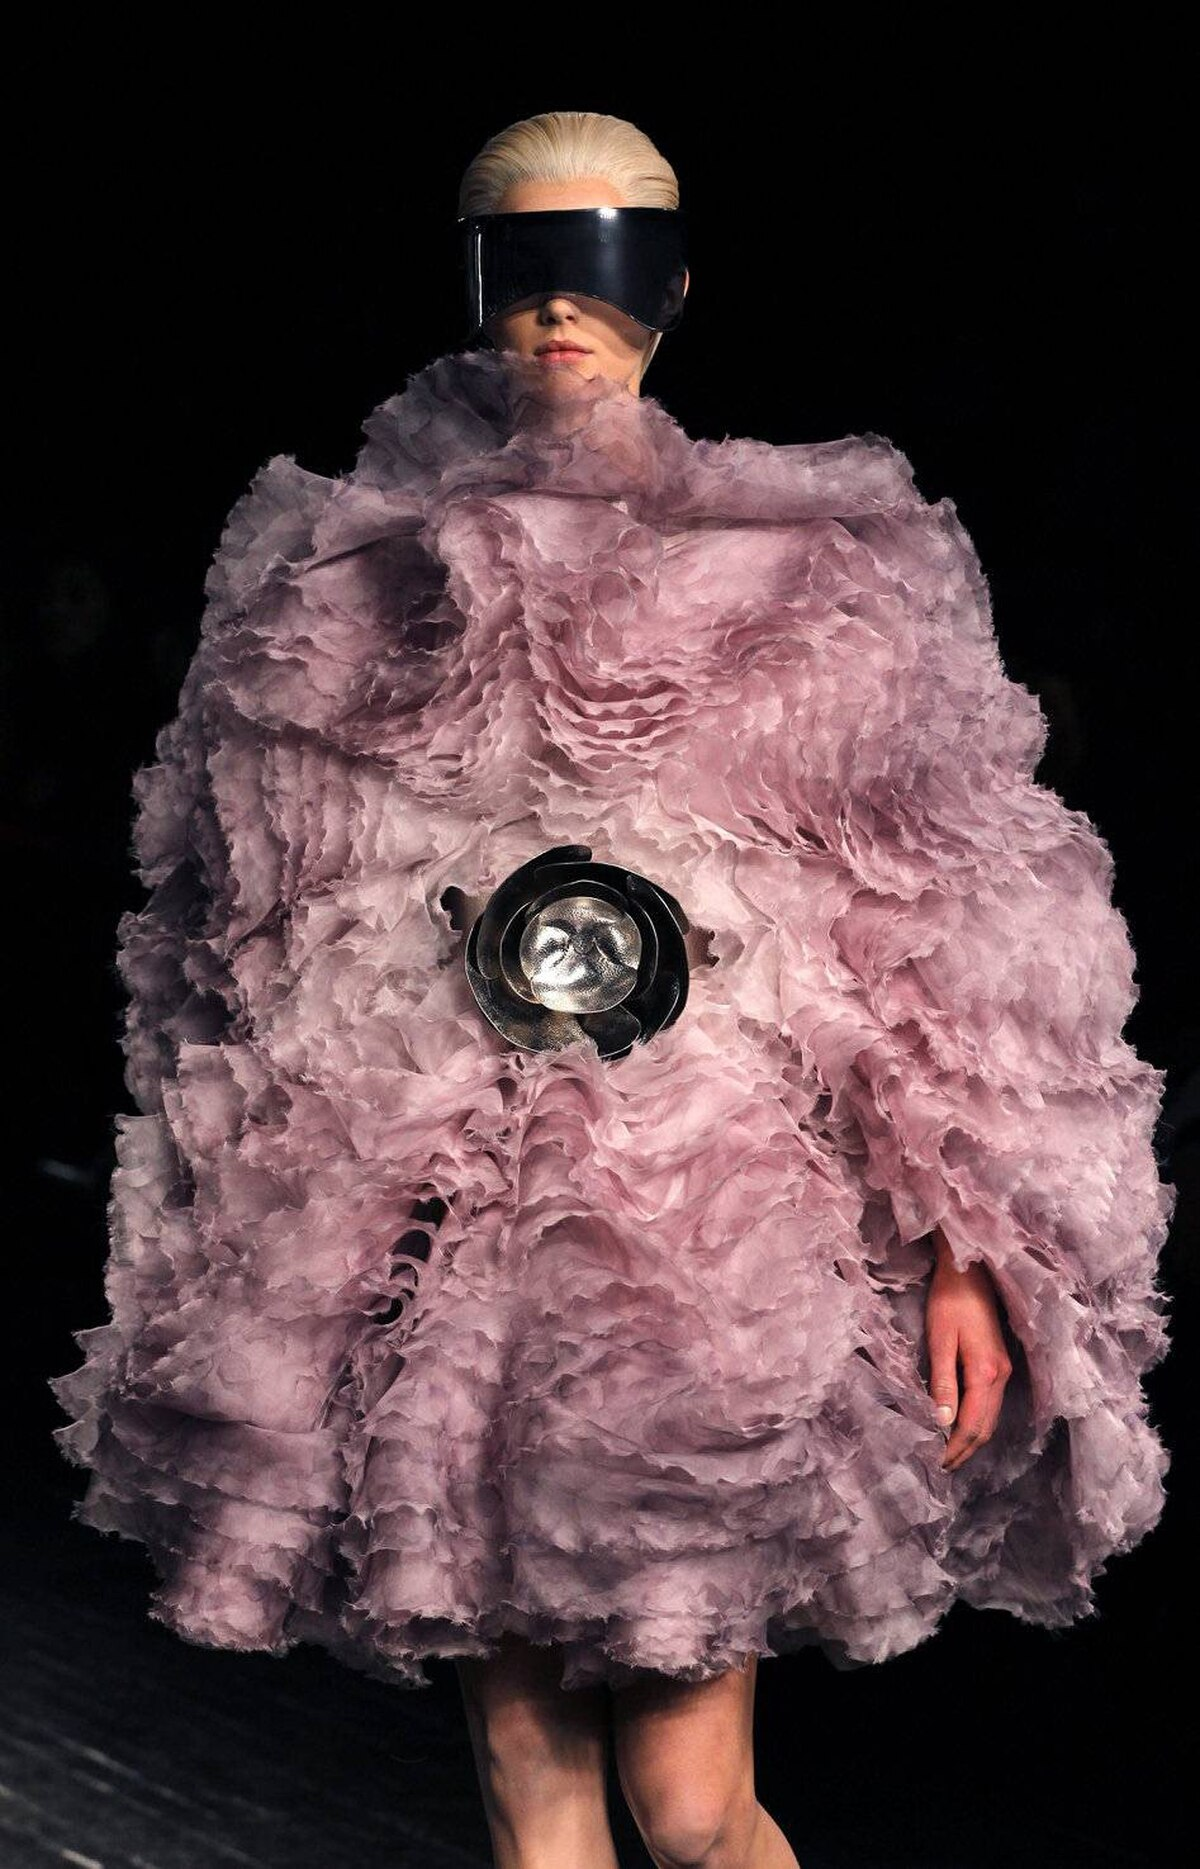 Burton gradually introduced more and more volume, through fur pompoms or feathers. By this point, the creations started to resemble wondrous sea anemones.